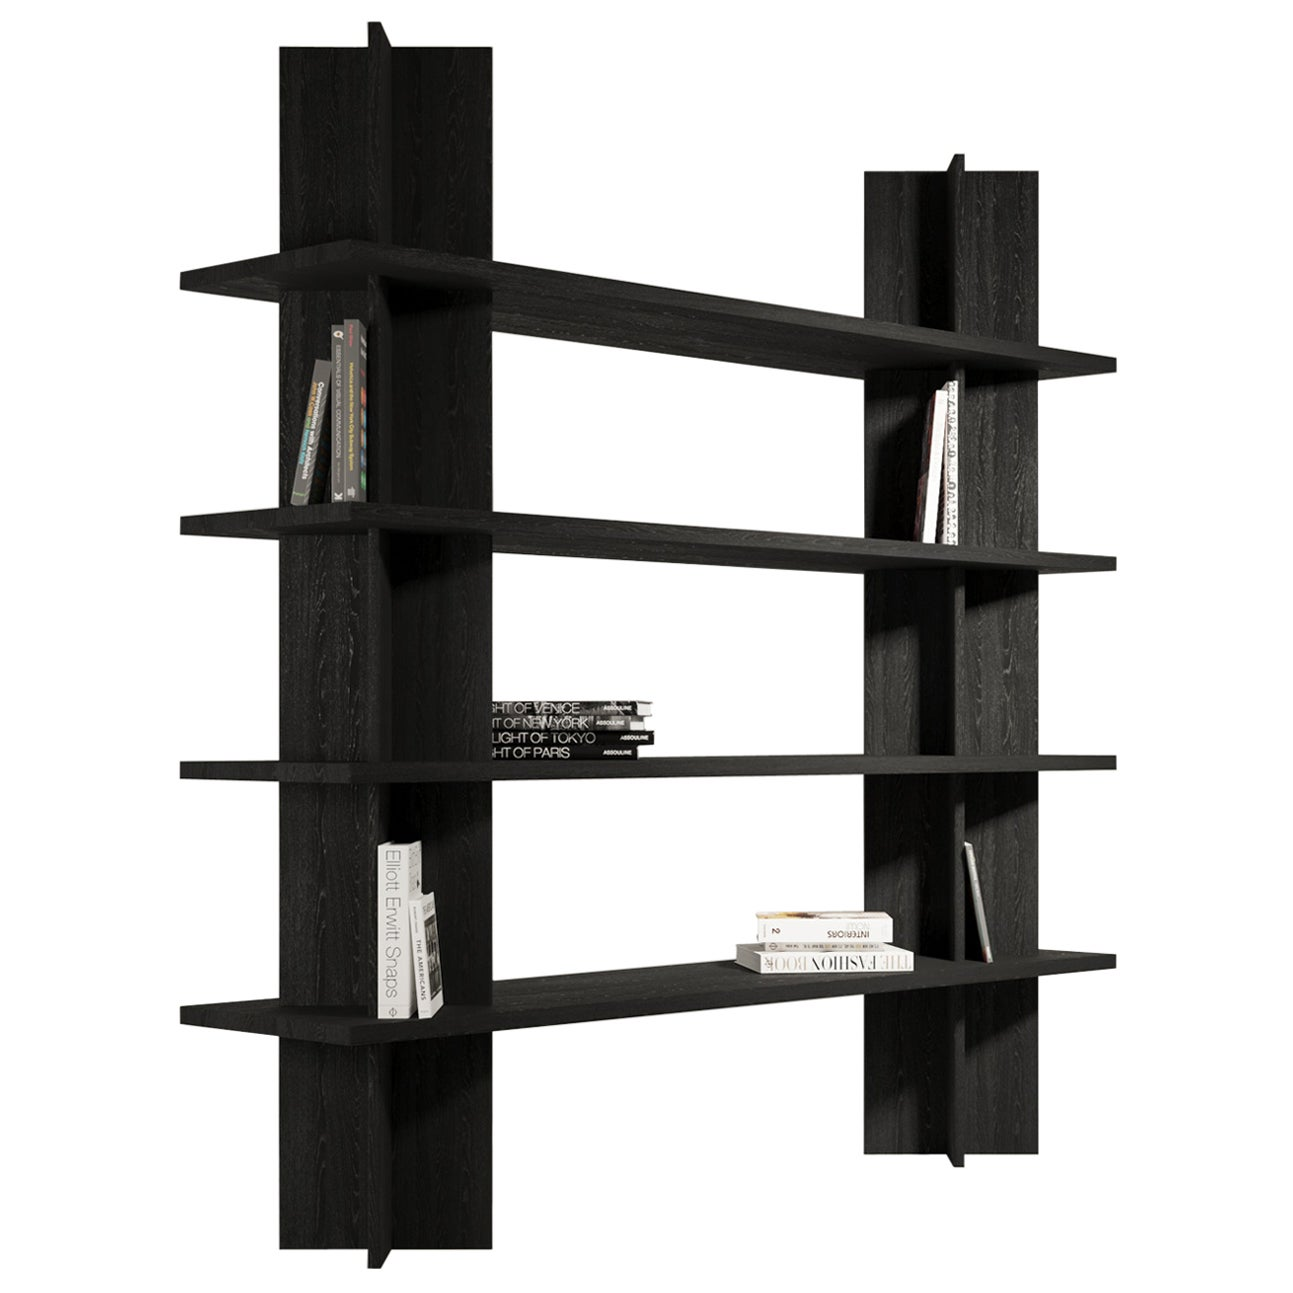 Monument Shelves by Cocorico